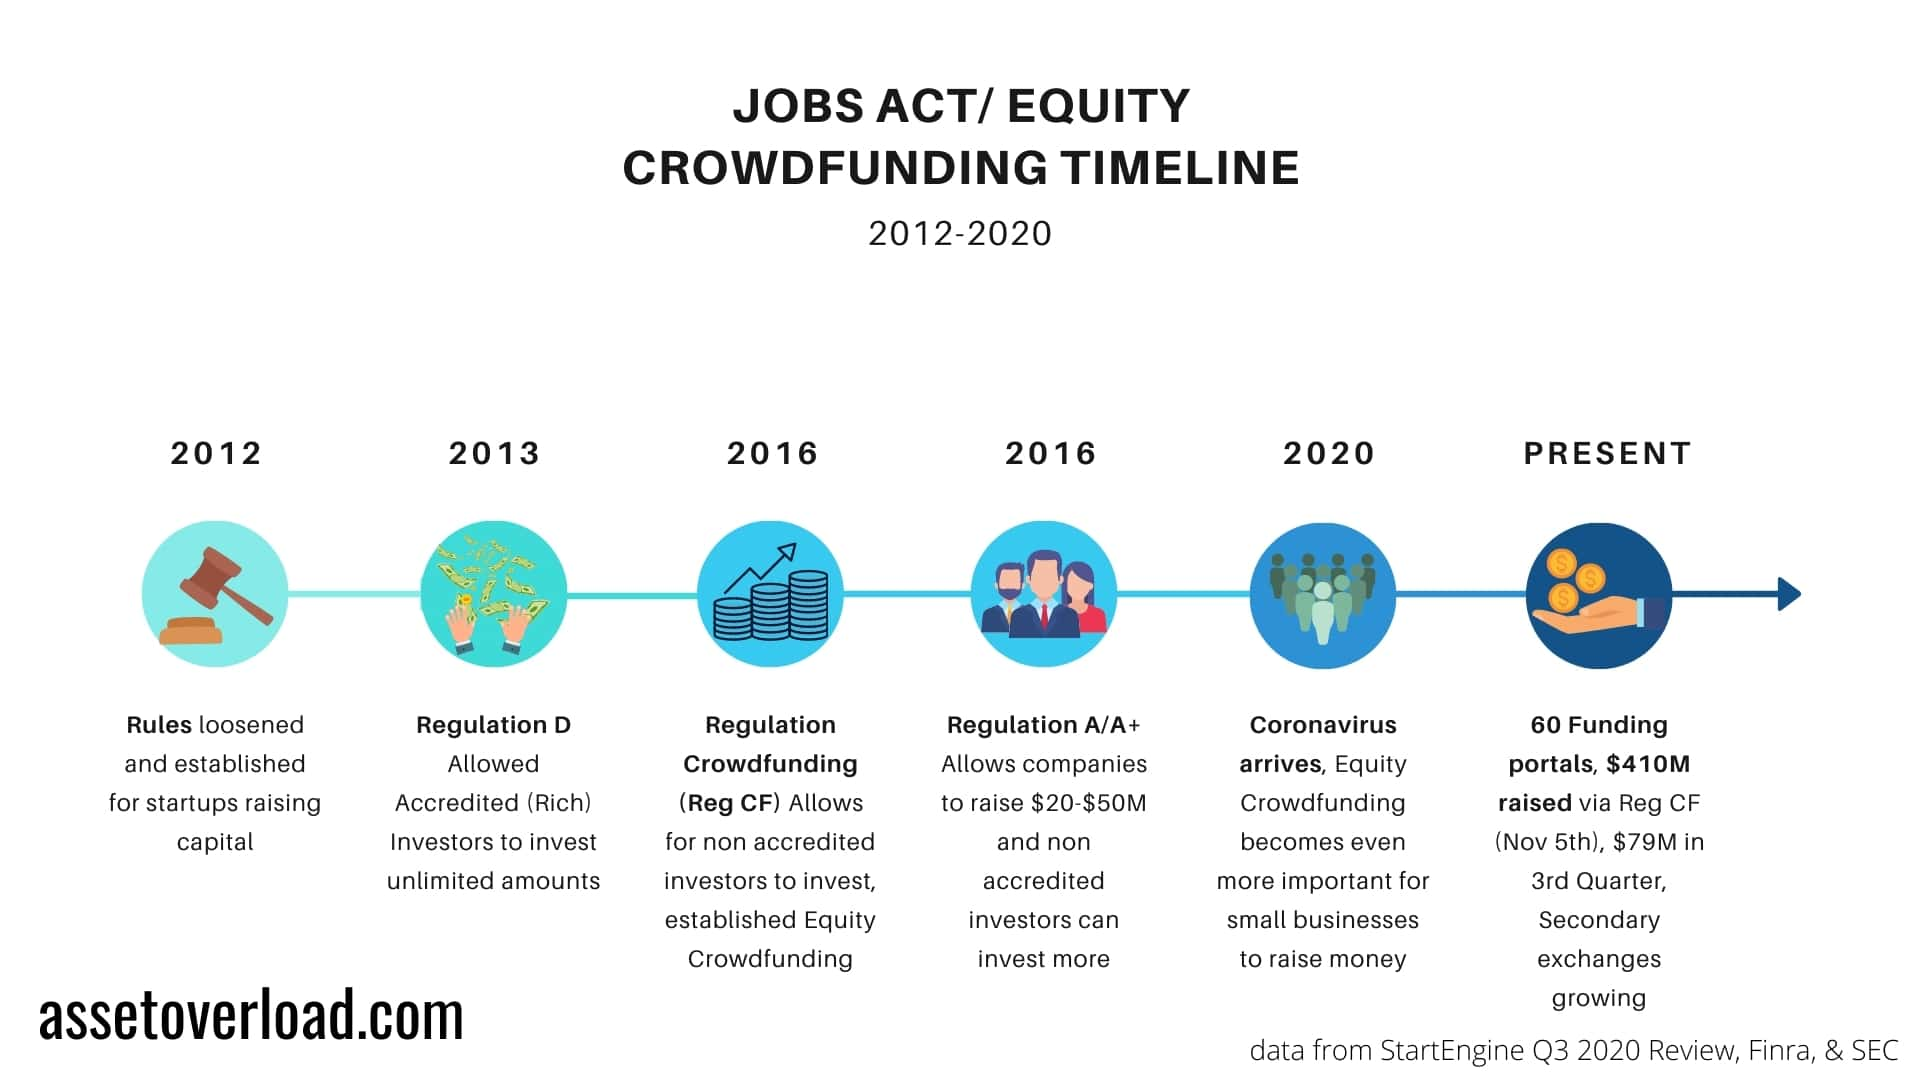 Jobs act and equity crowdfunding timeline from 2012 to 2020